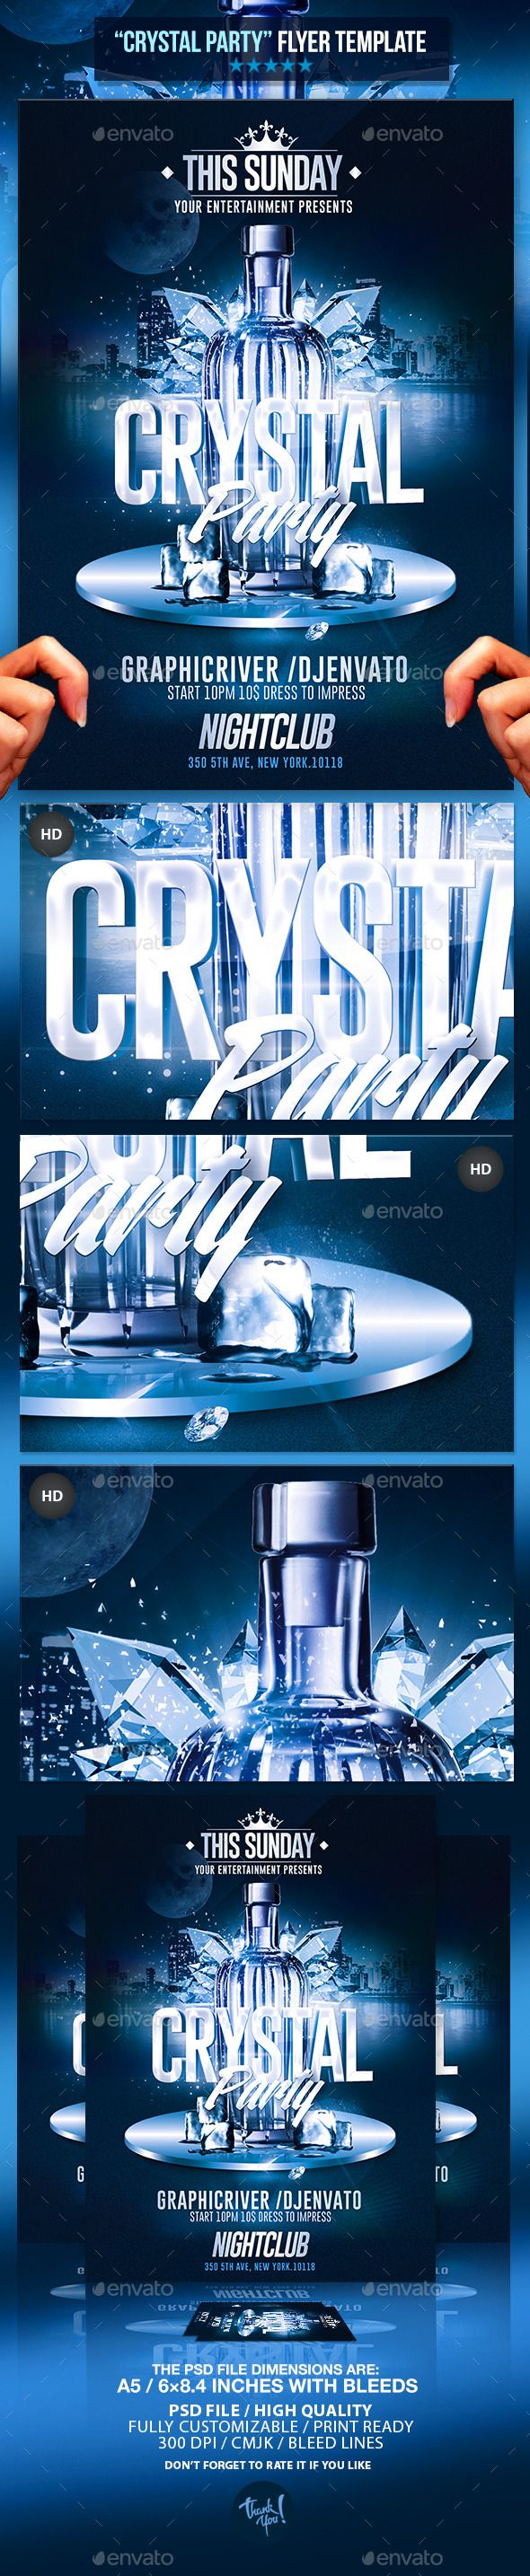 Poster design background psd - Crystal Bottle Party Psd Flyer Template